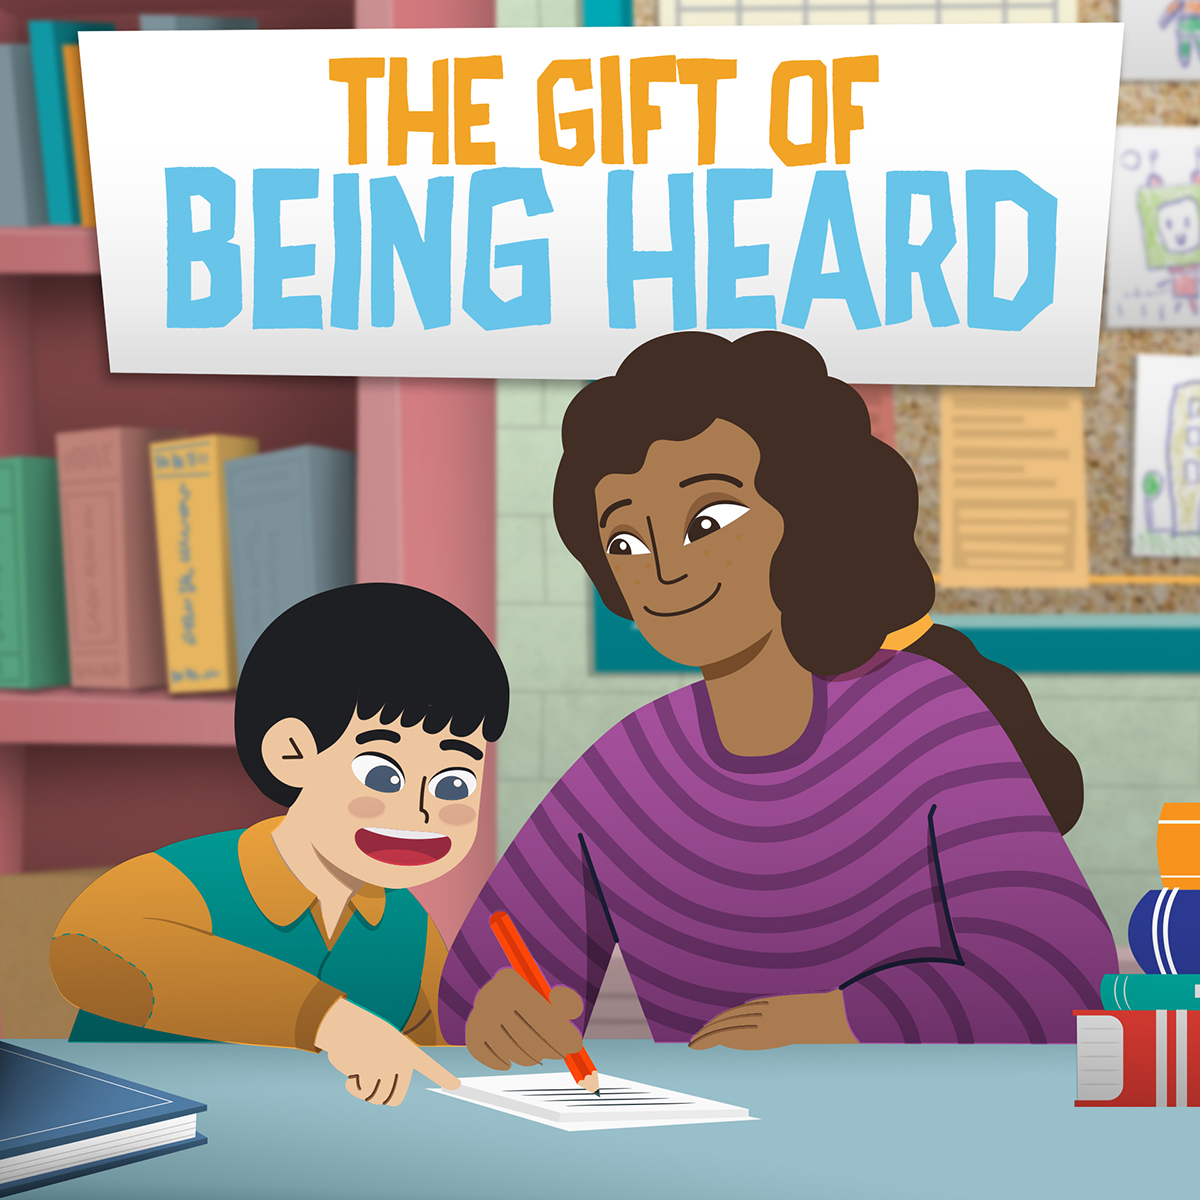 The gift of being heard